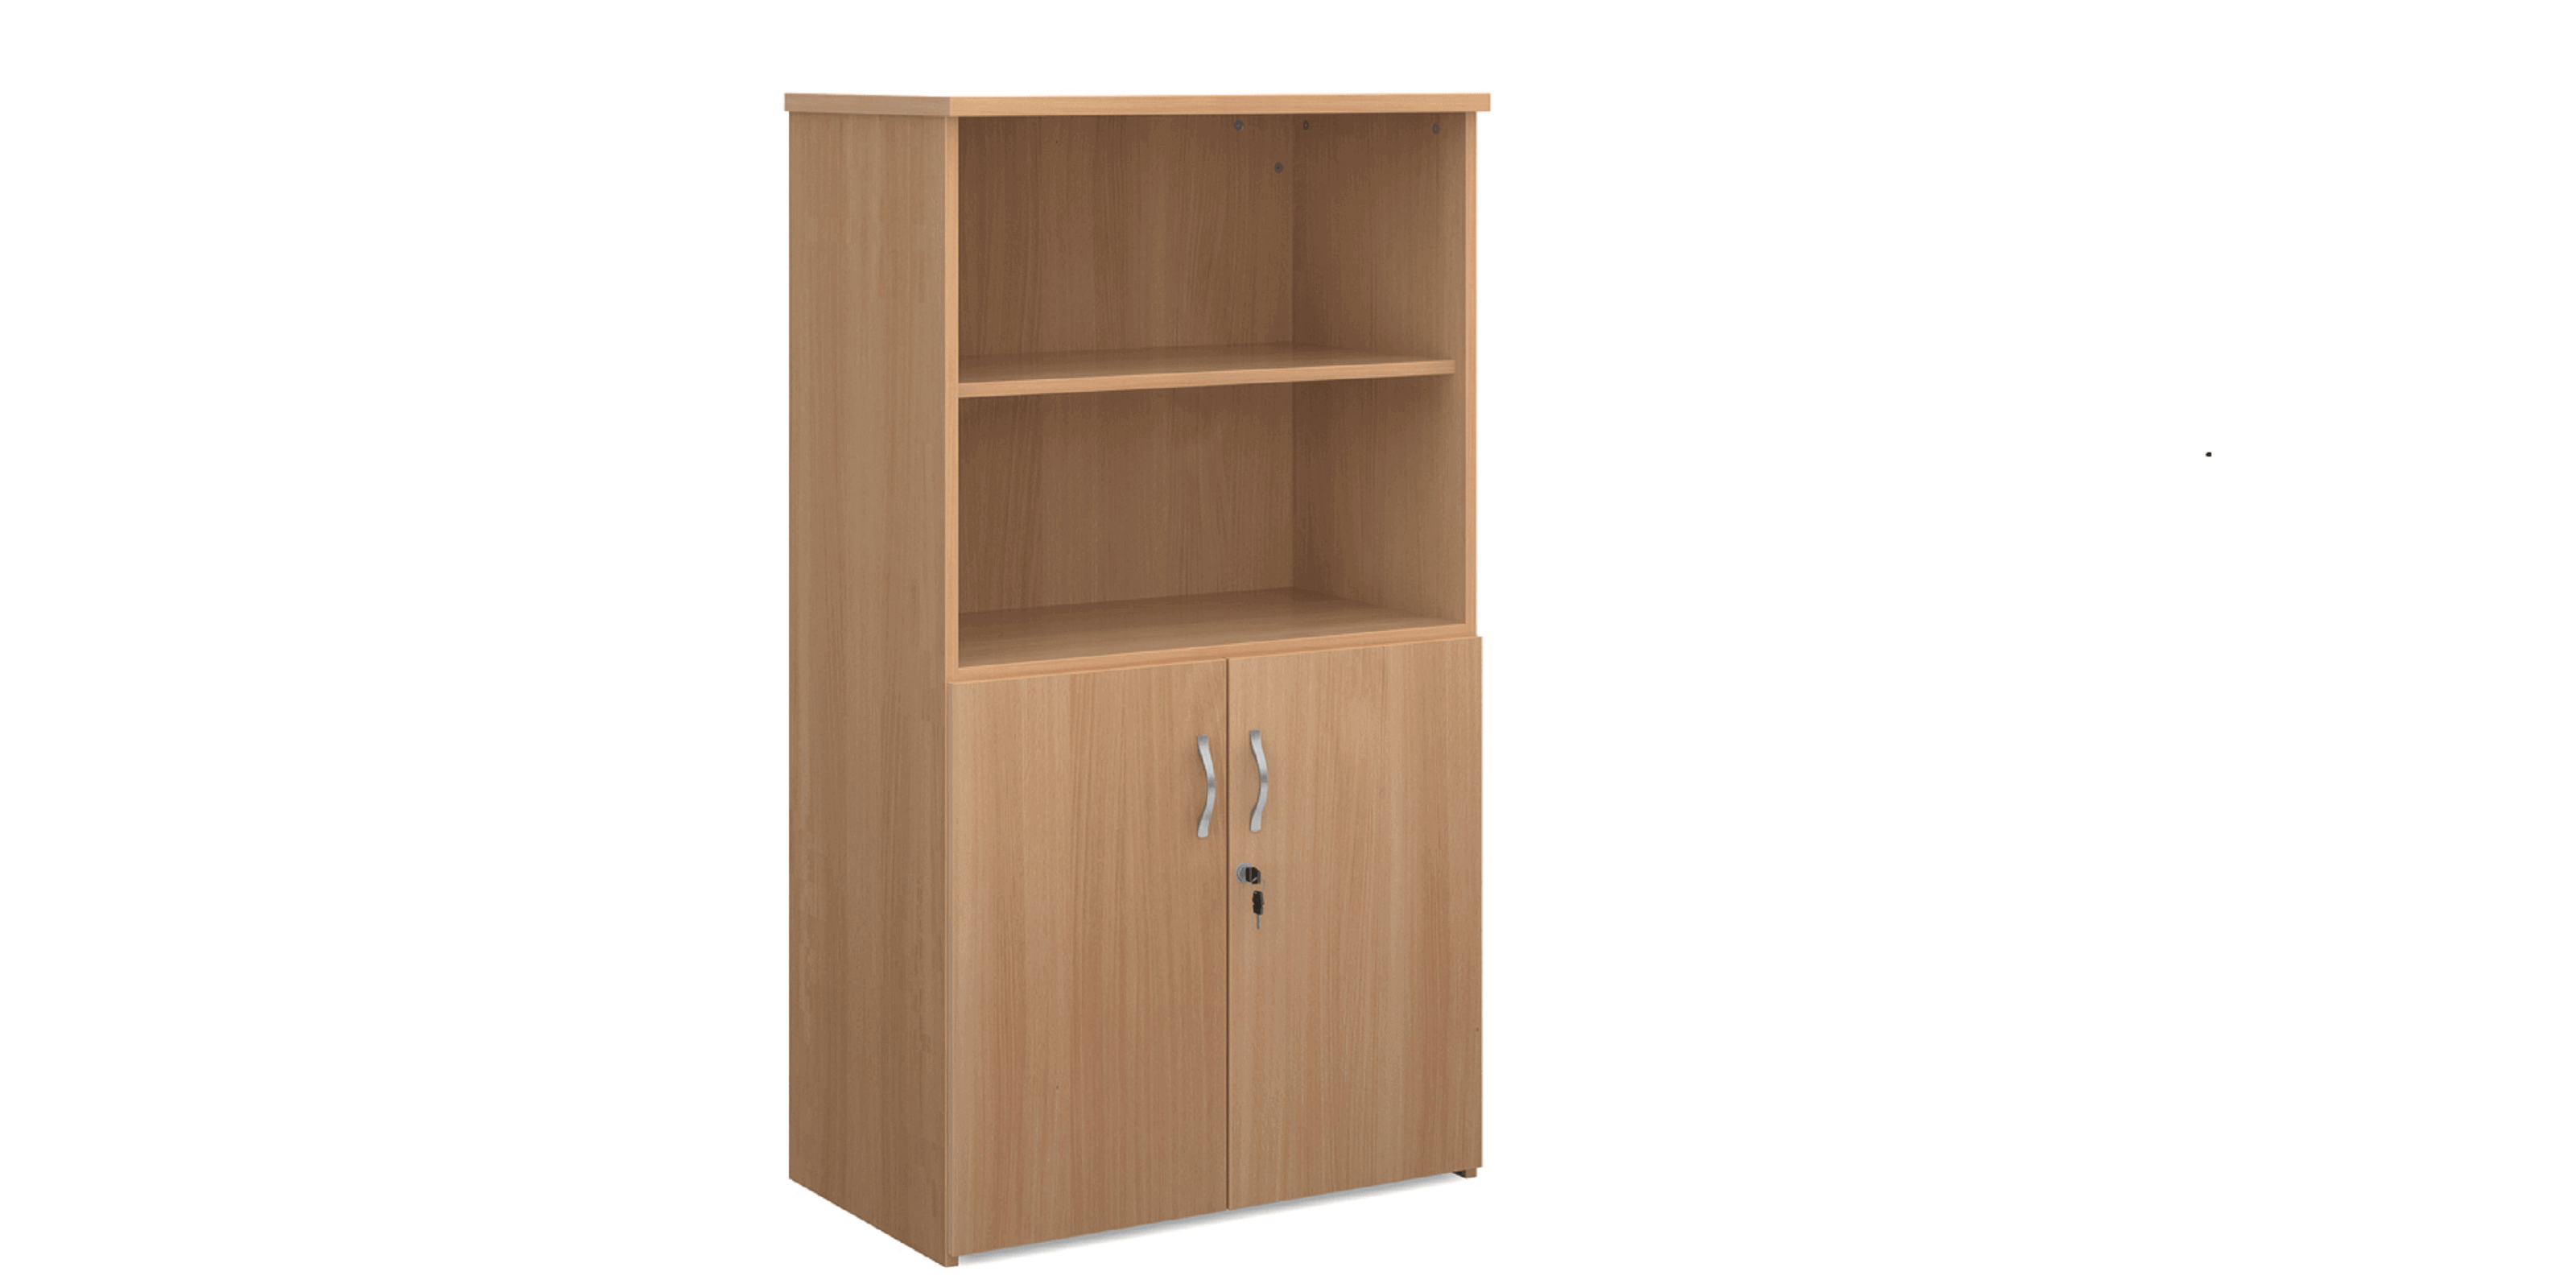 Secondary Storage Combination Unit Image